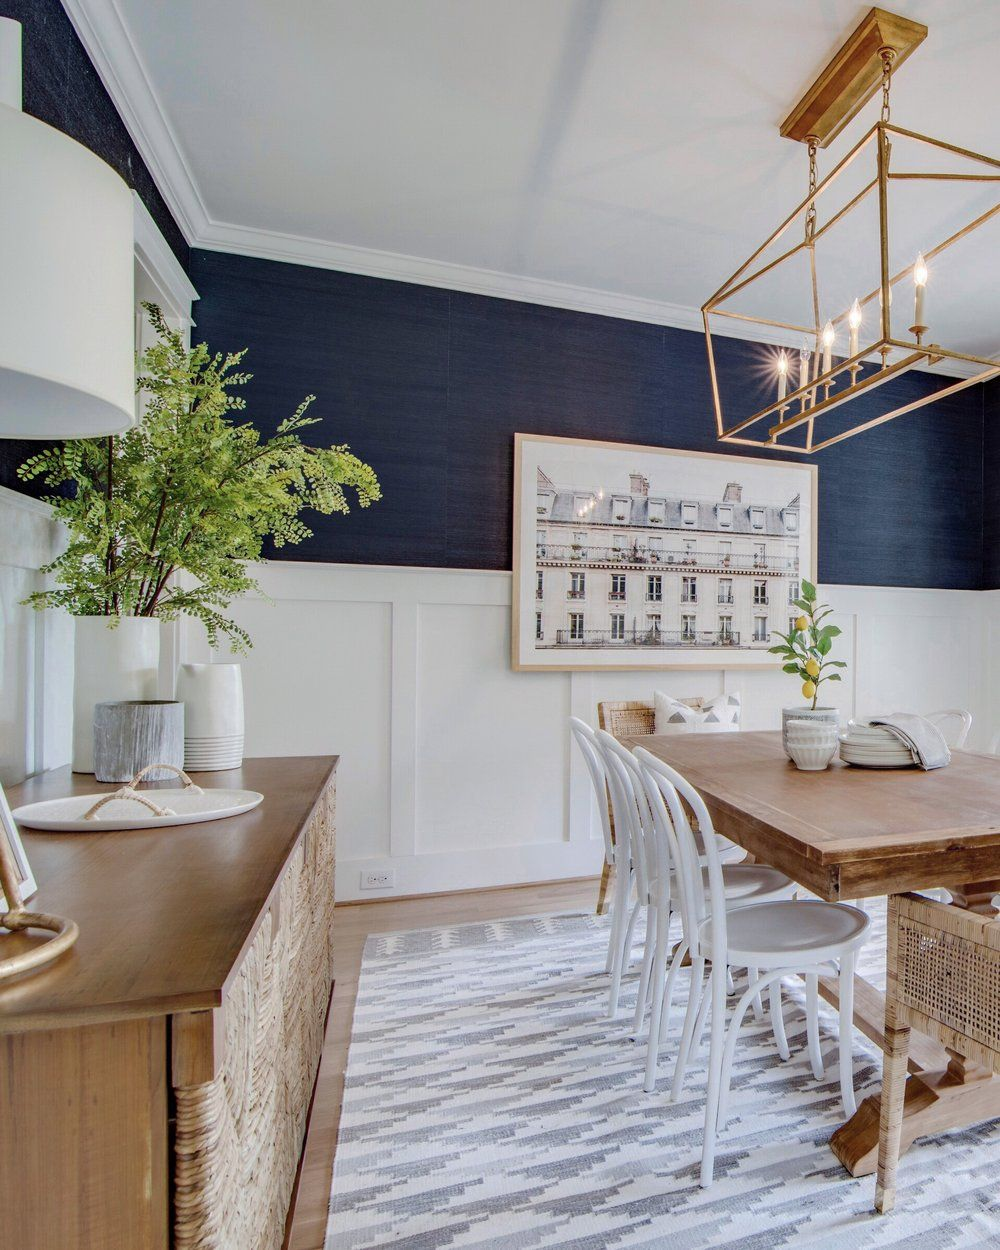 Our Navy Dining Room Reveal!